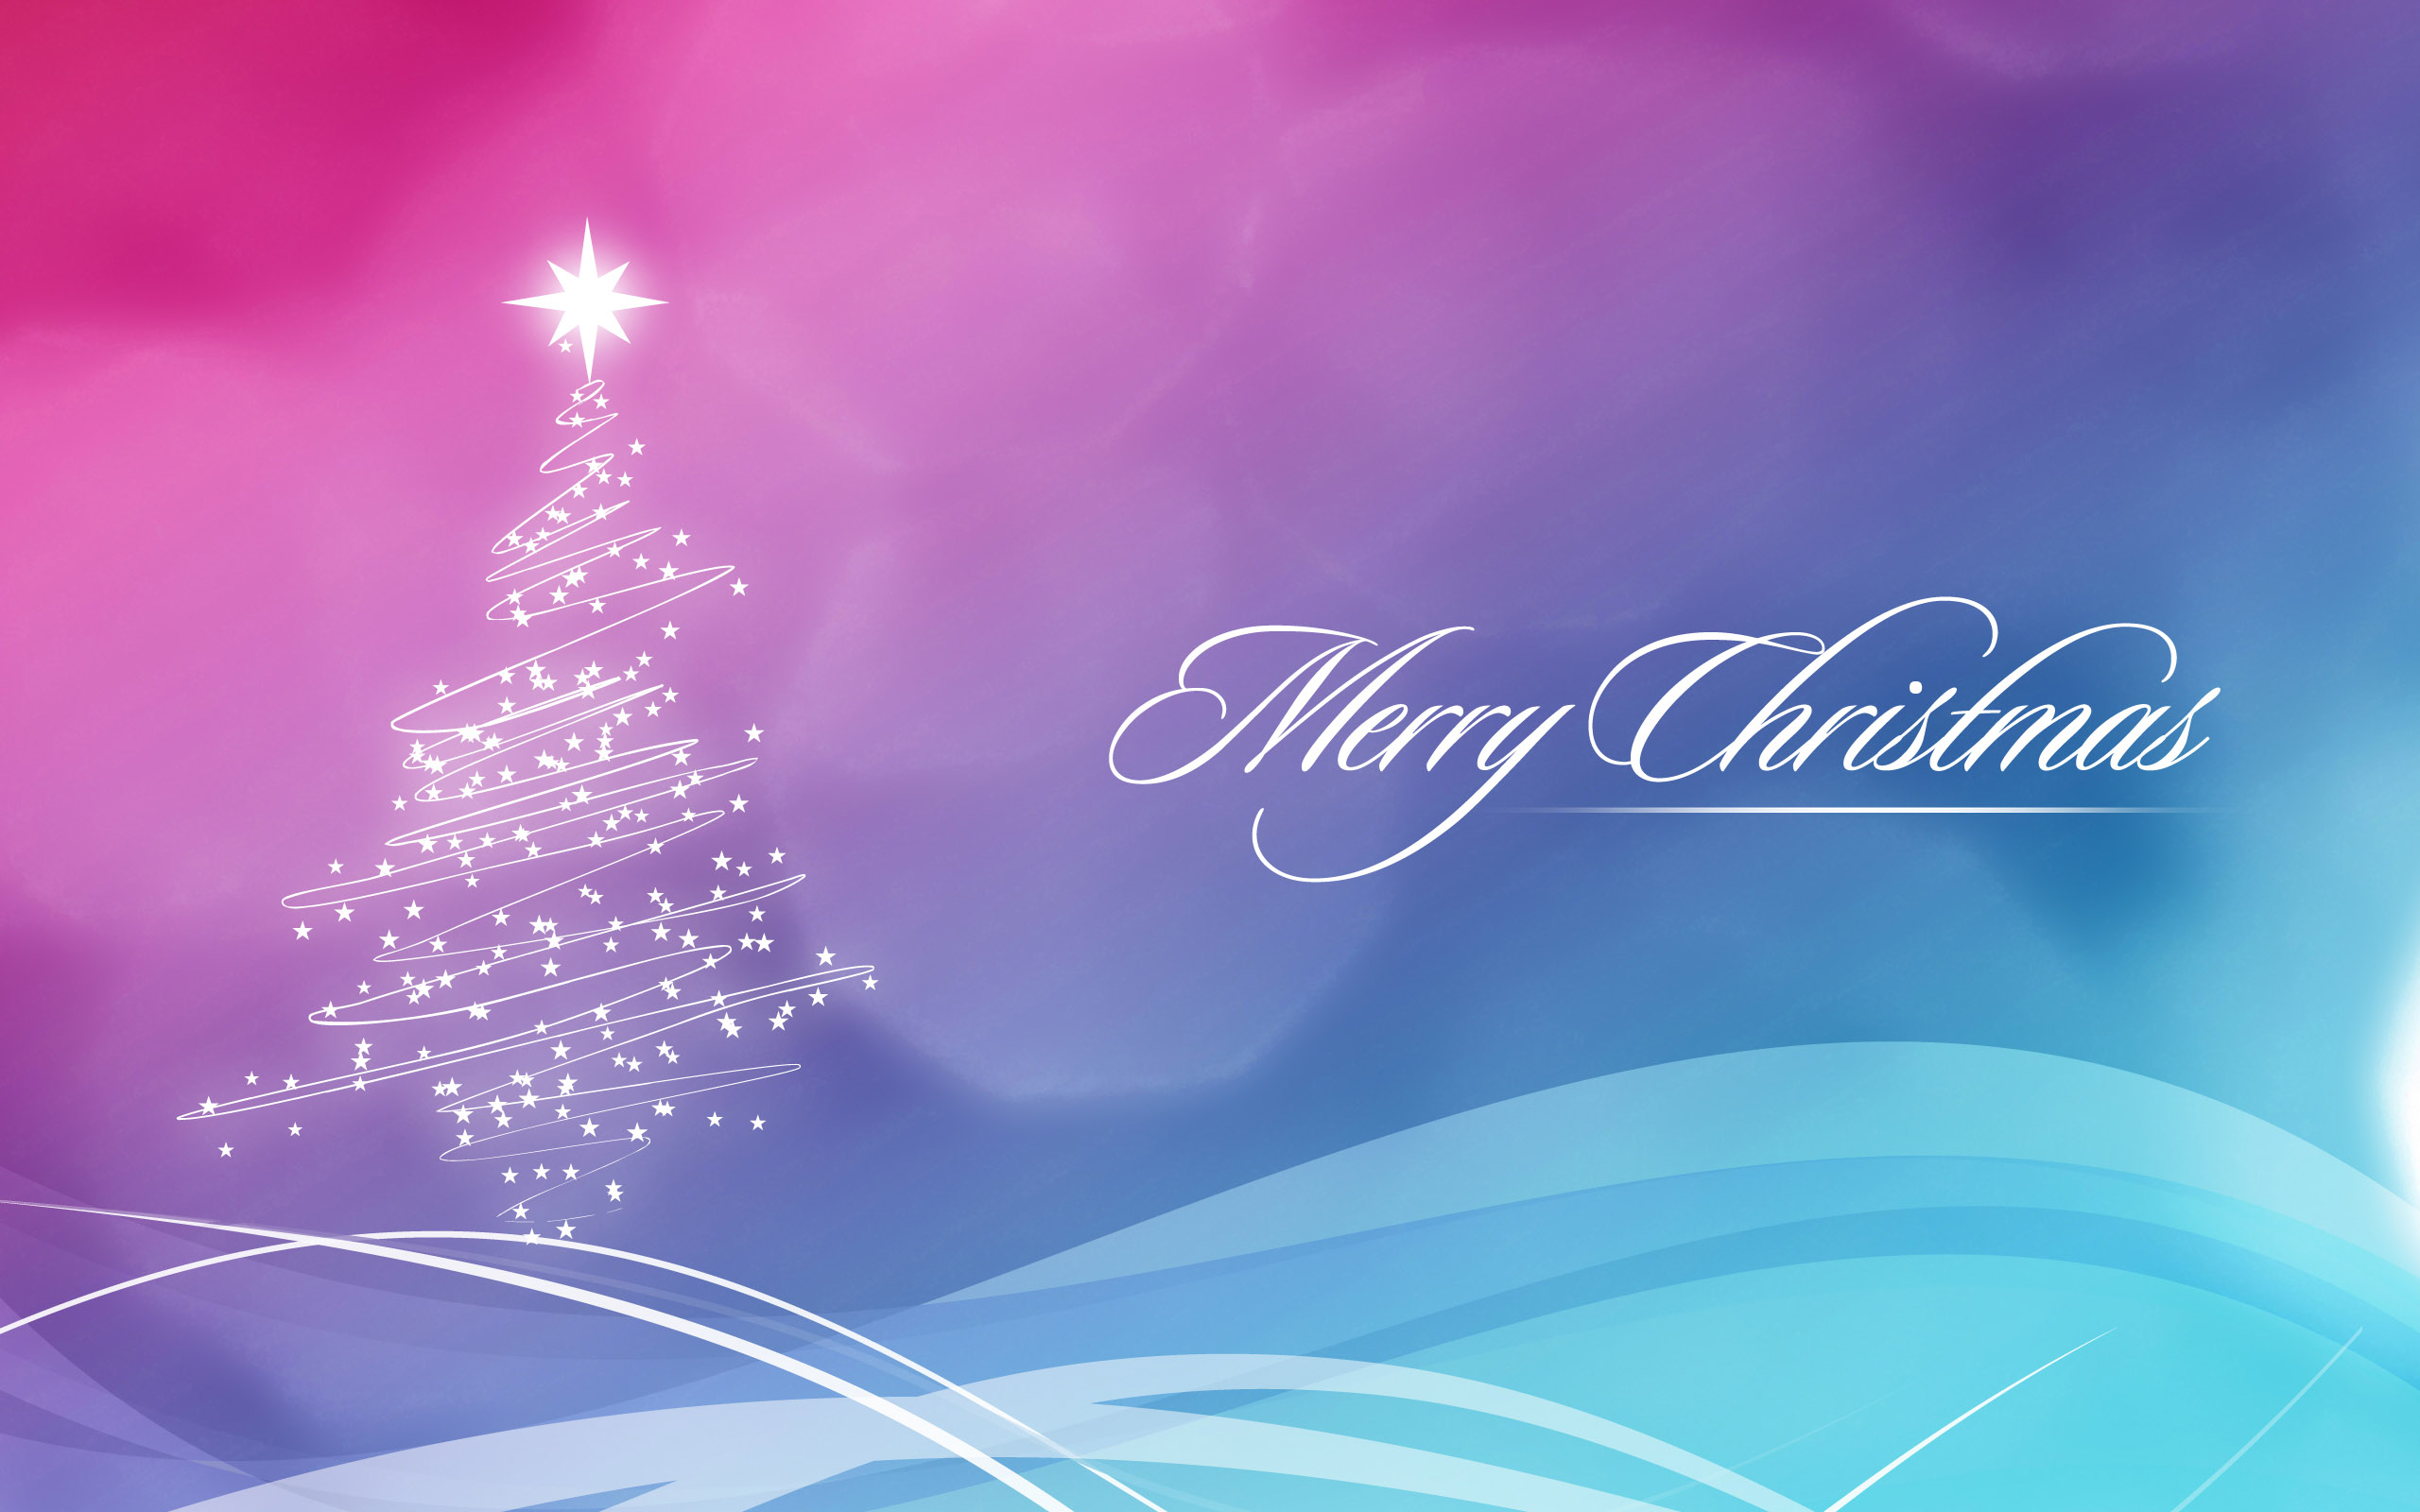 Hd Wallpapers Hd Backgrounds: Italic Merry Christmas